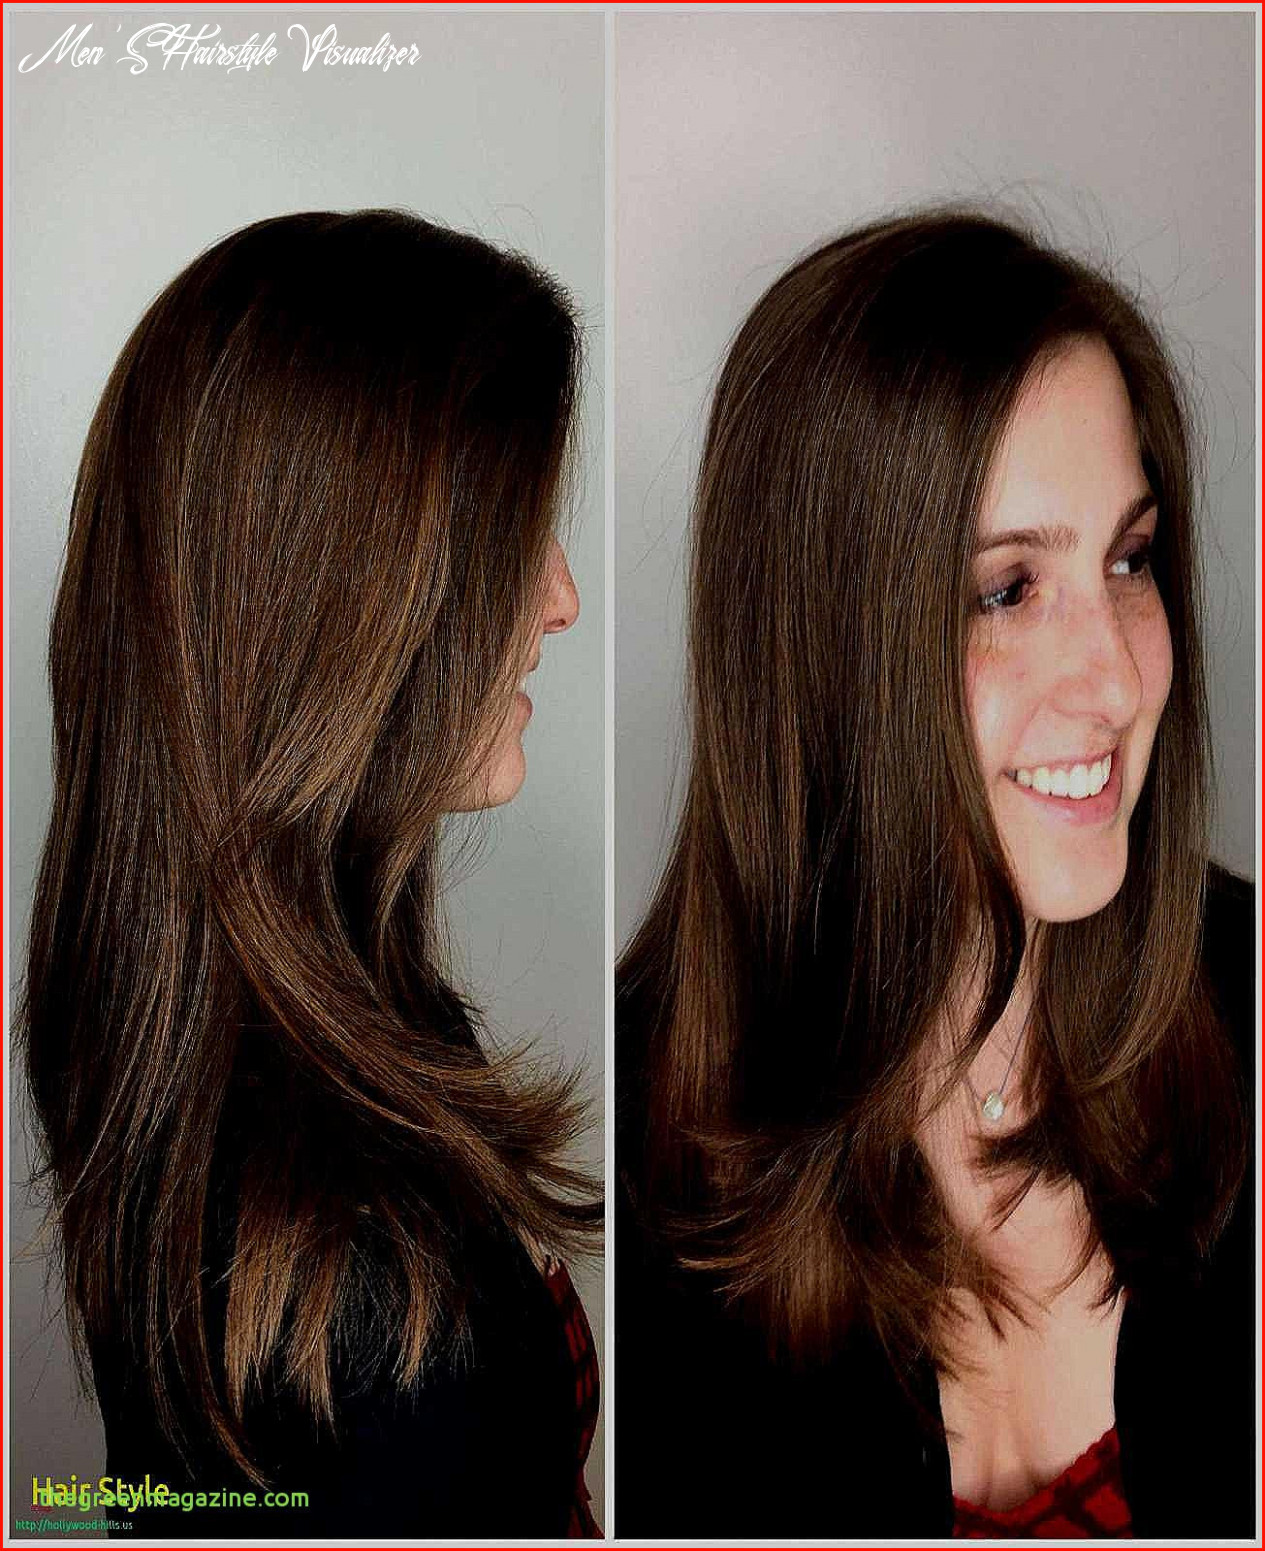 Cool haircut visualizer picture of haircuts style 10 10